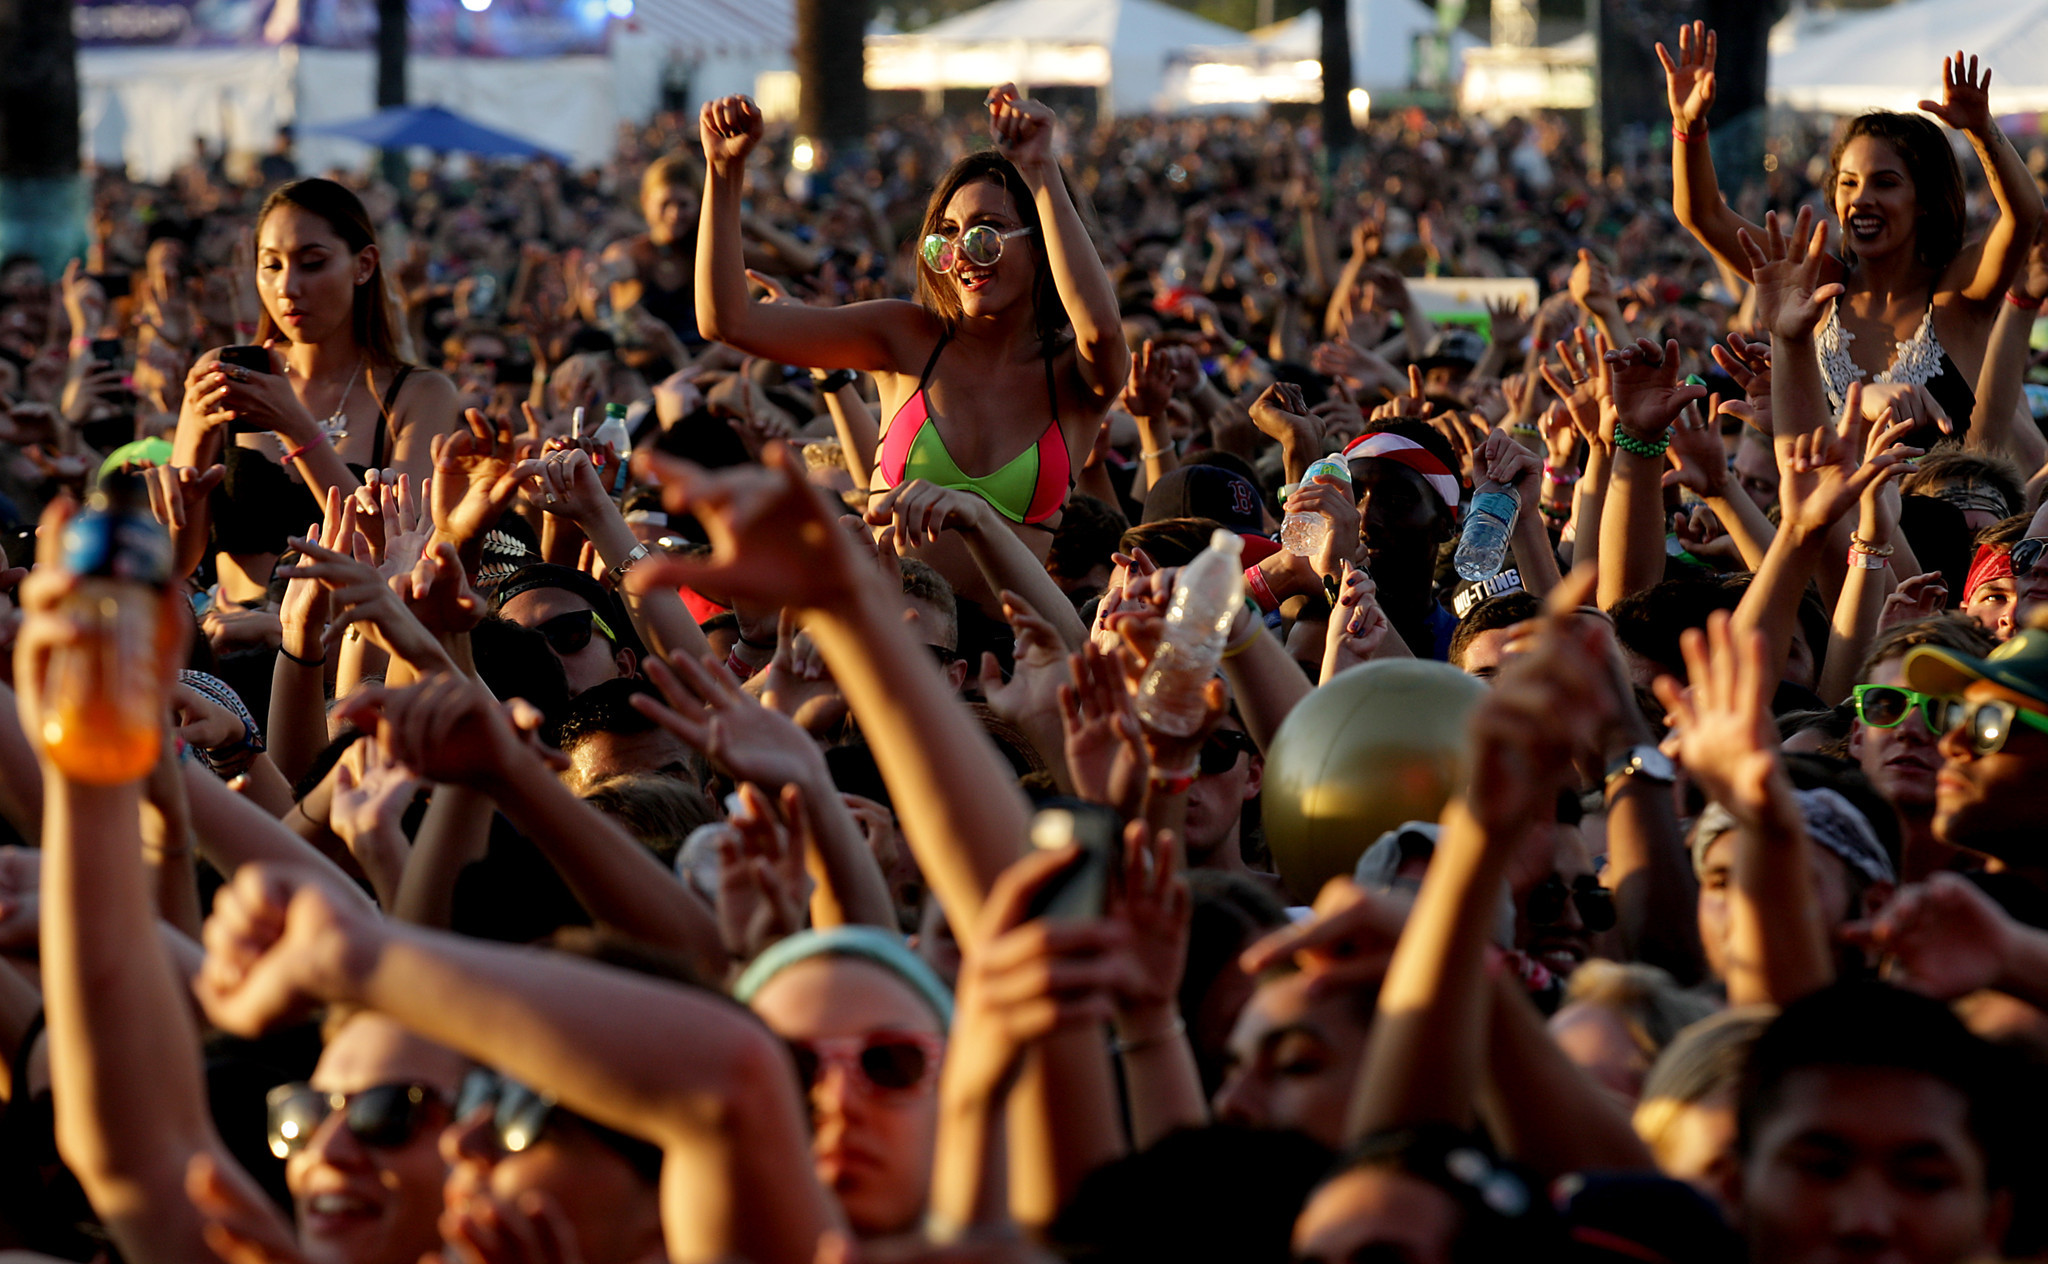 Fans at Hard Summer in 2016. (Luis Sinco / LA Times)